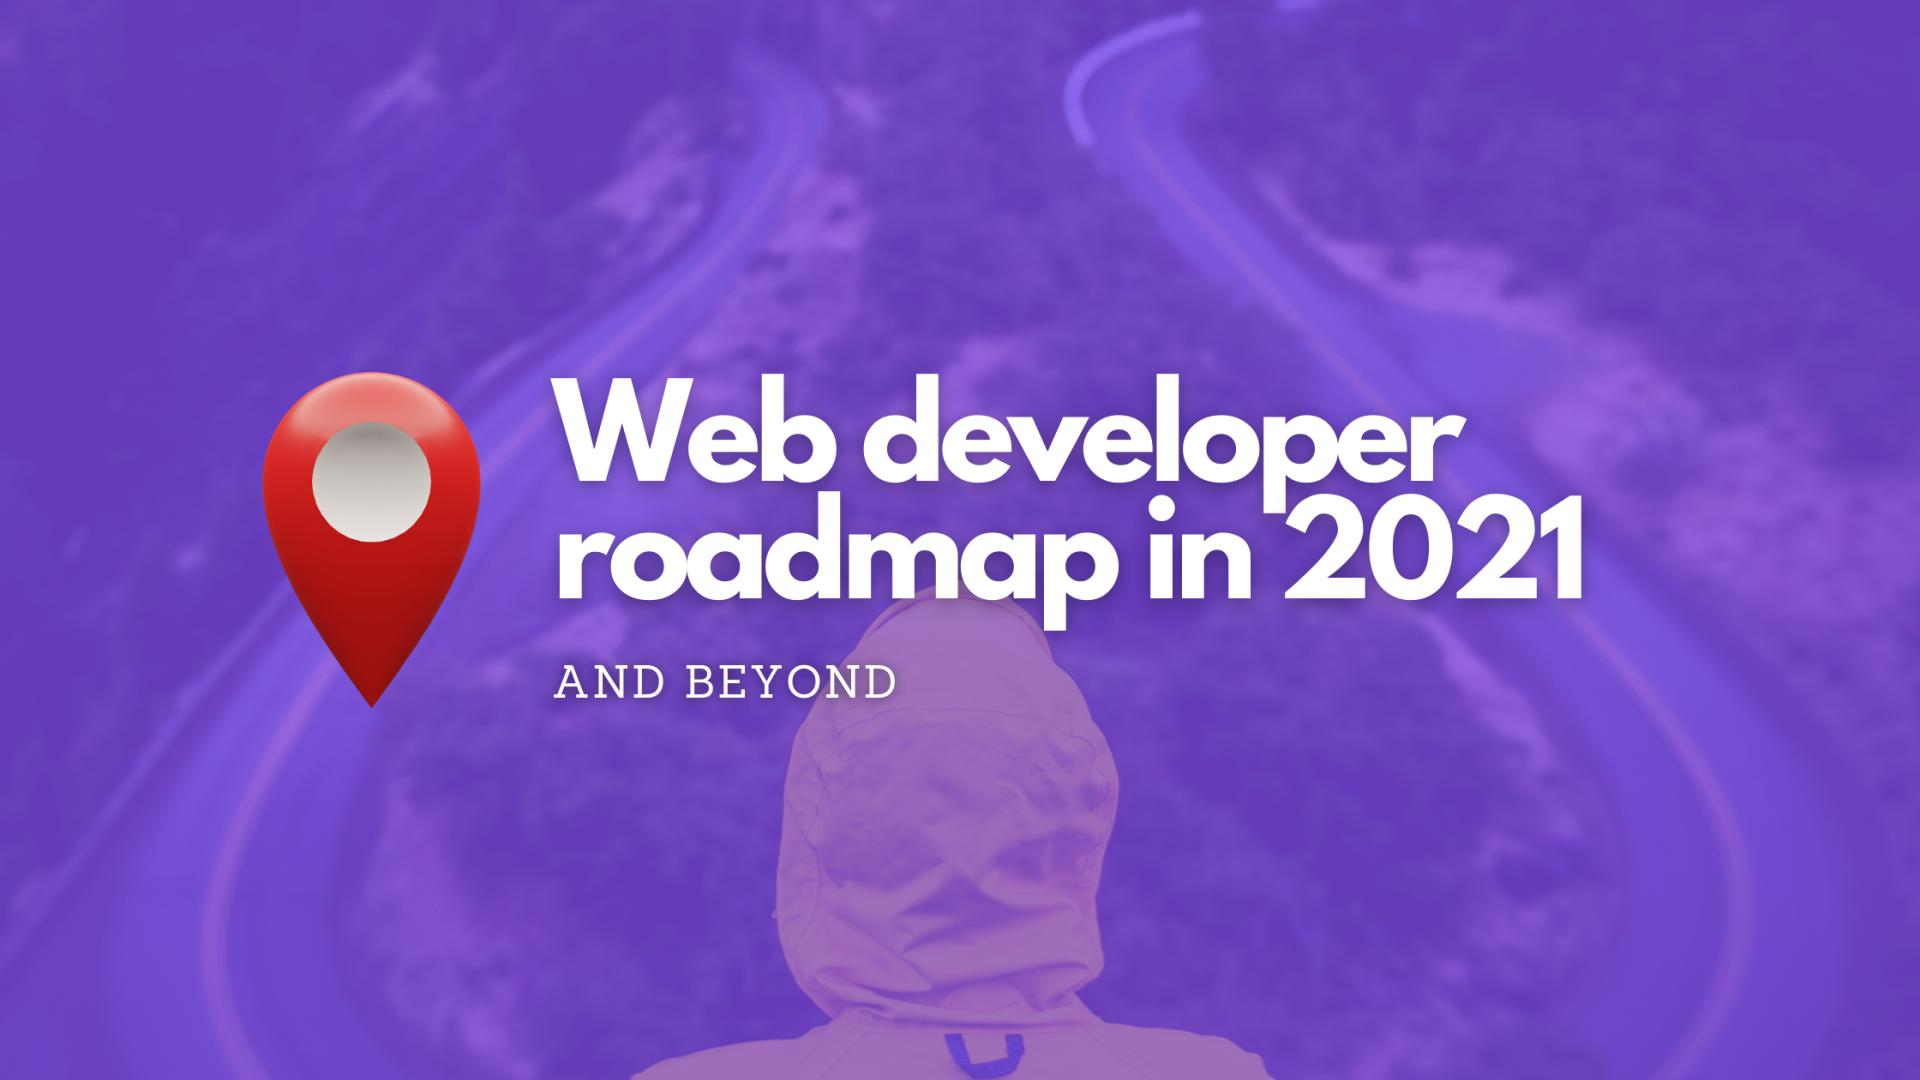 Web developer roadmap in 2021 and beyond